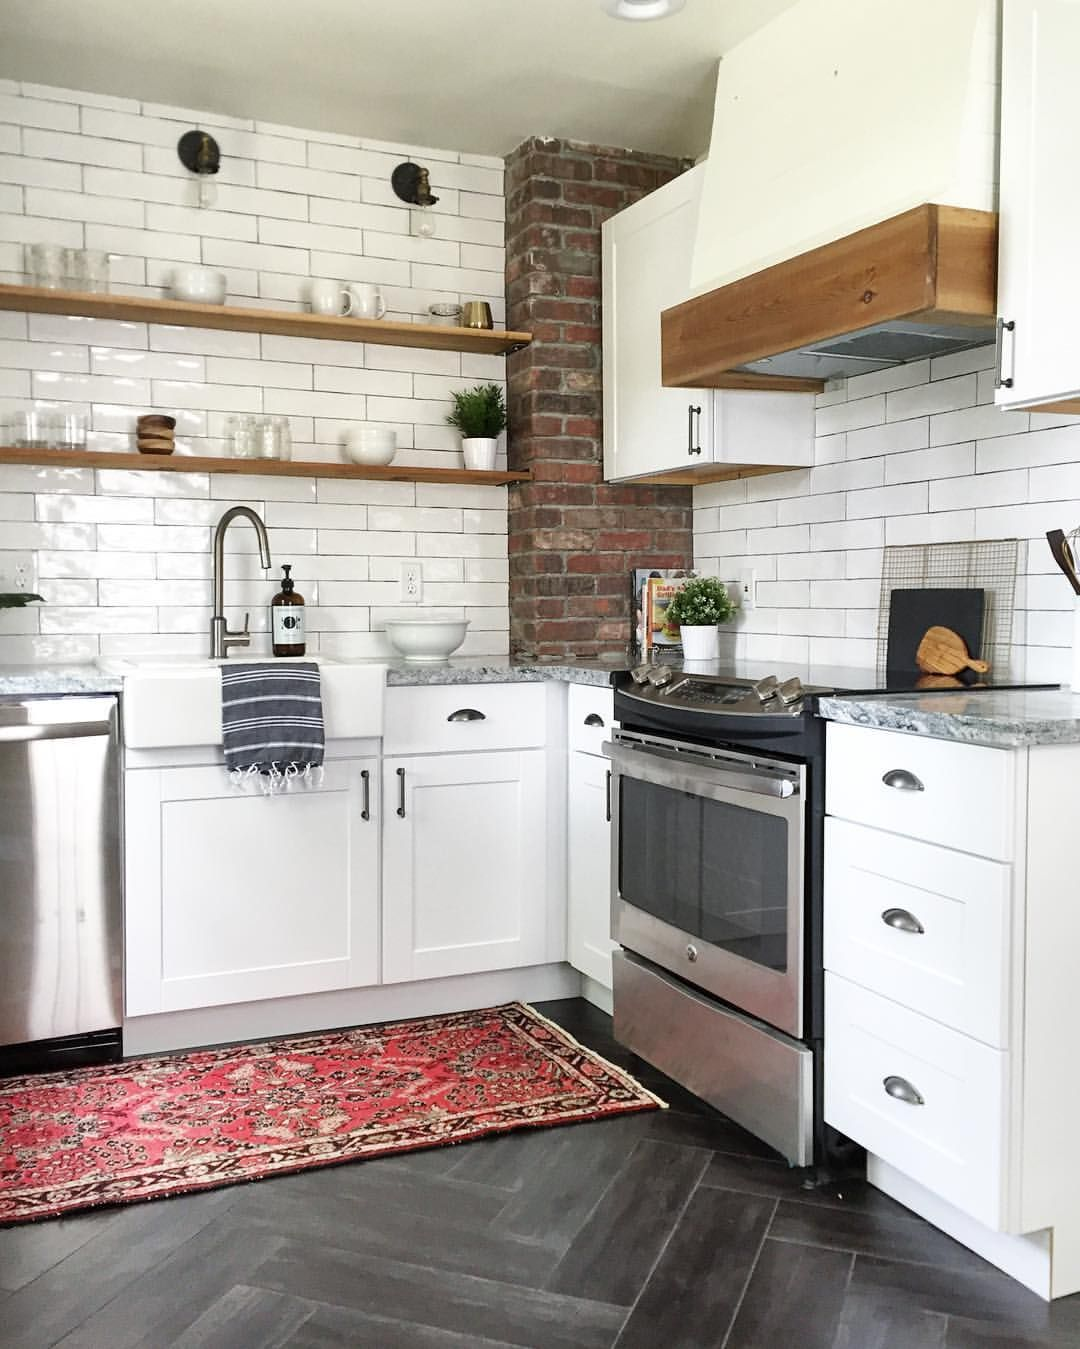 Pin by Emily Potterbaum on Home Decor | Pinterest | Kitchen floors ...